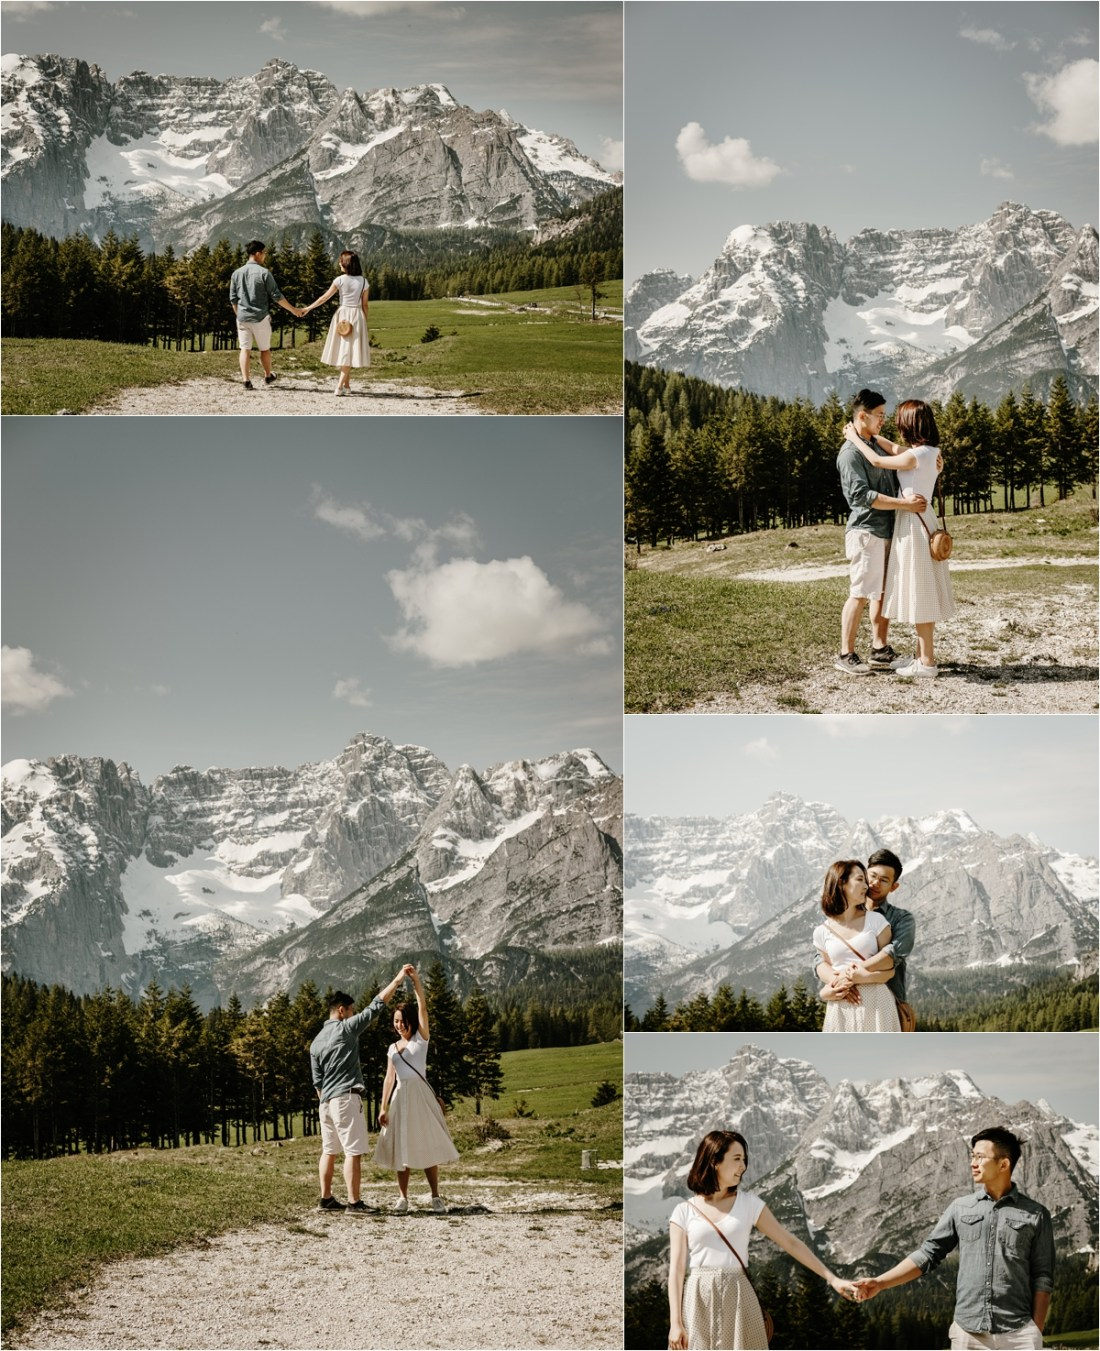 An engagement shoot exploring the Dolomites by Wild Connections Photography